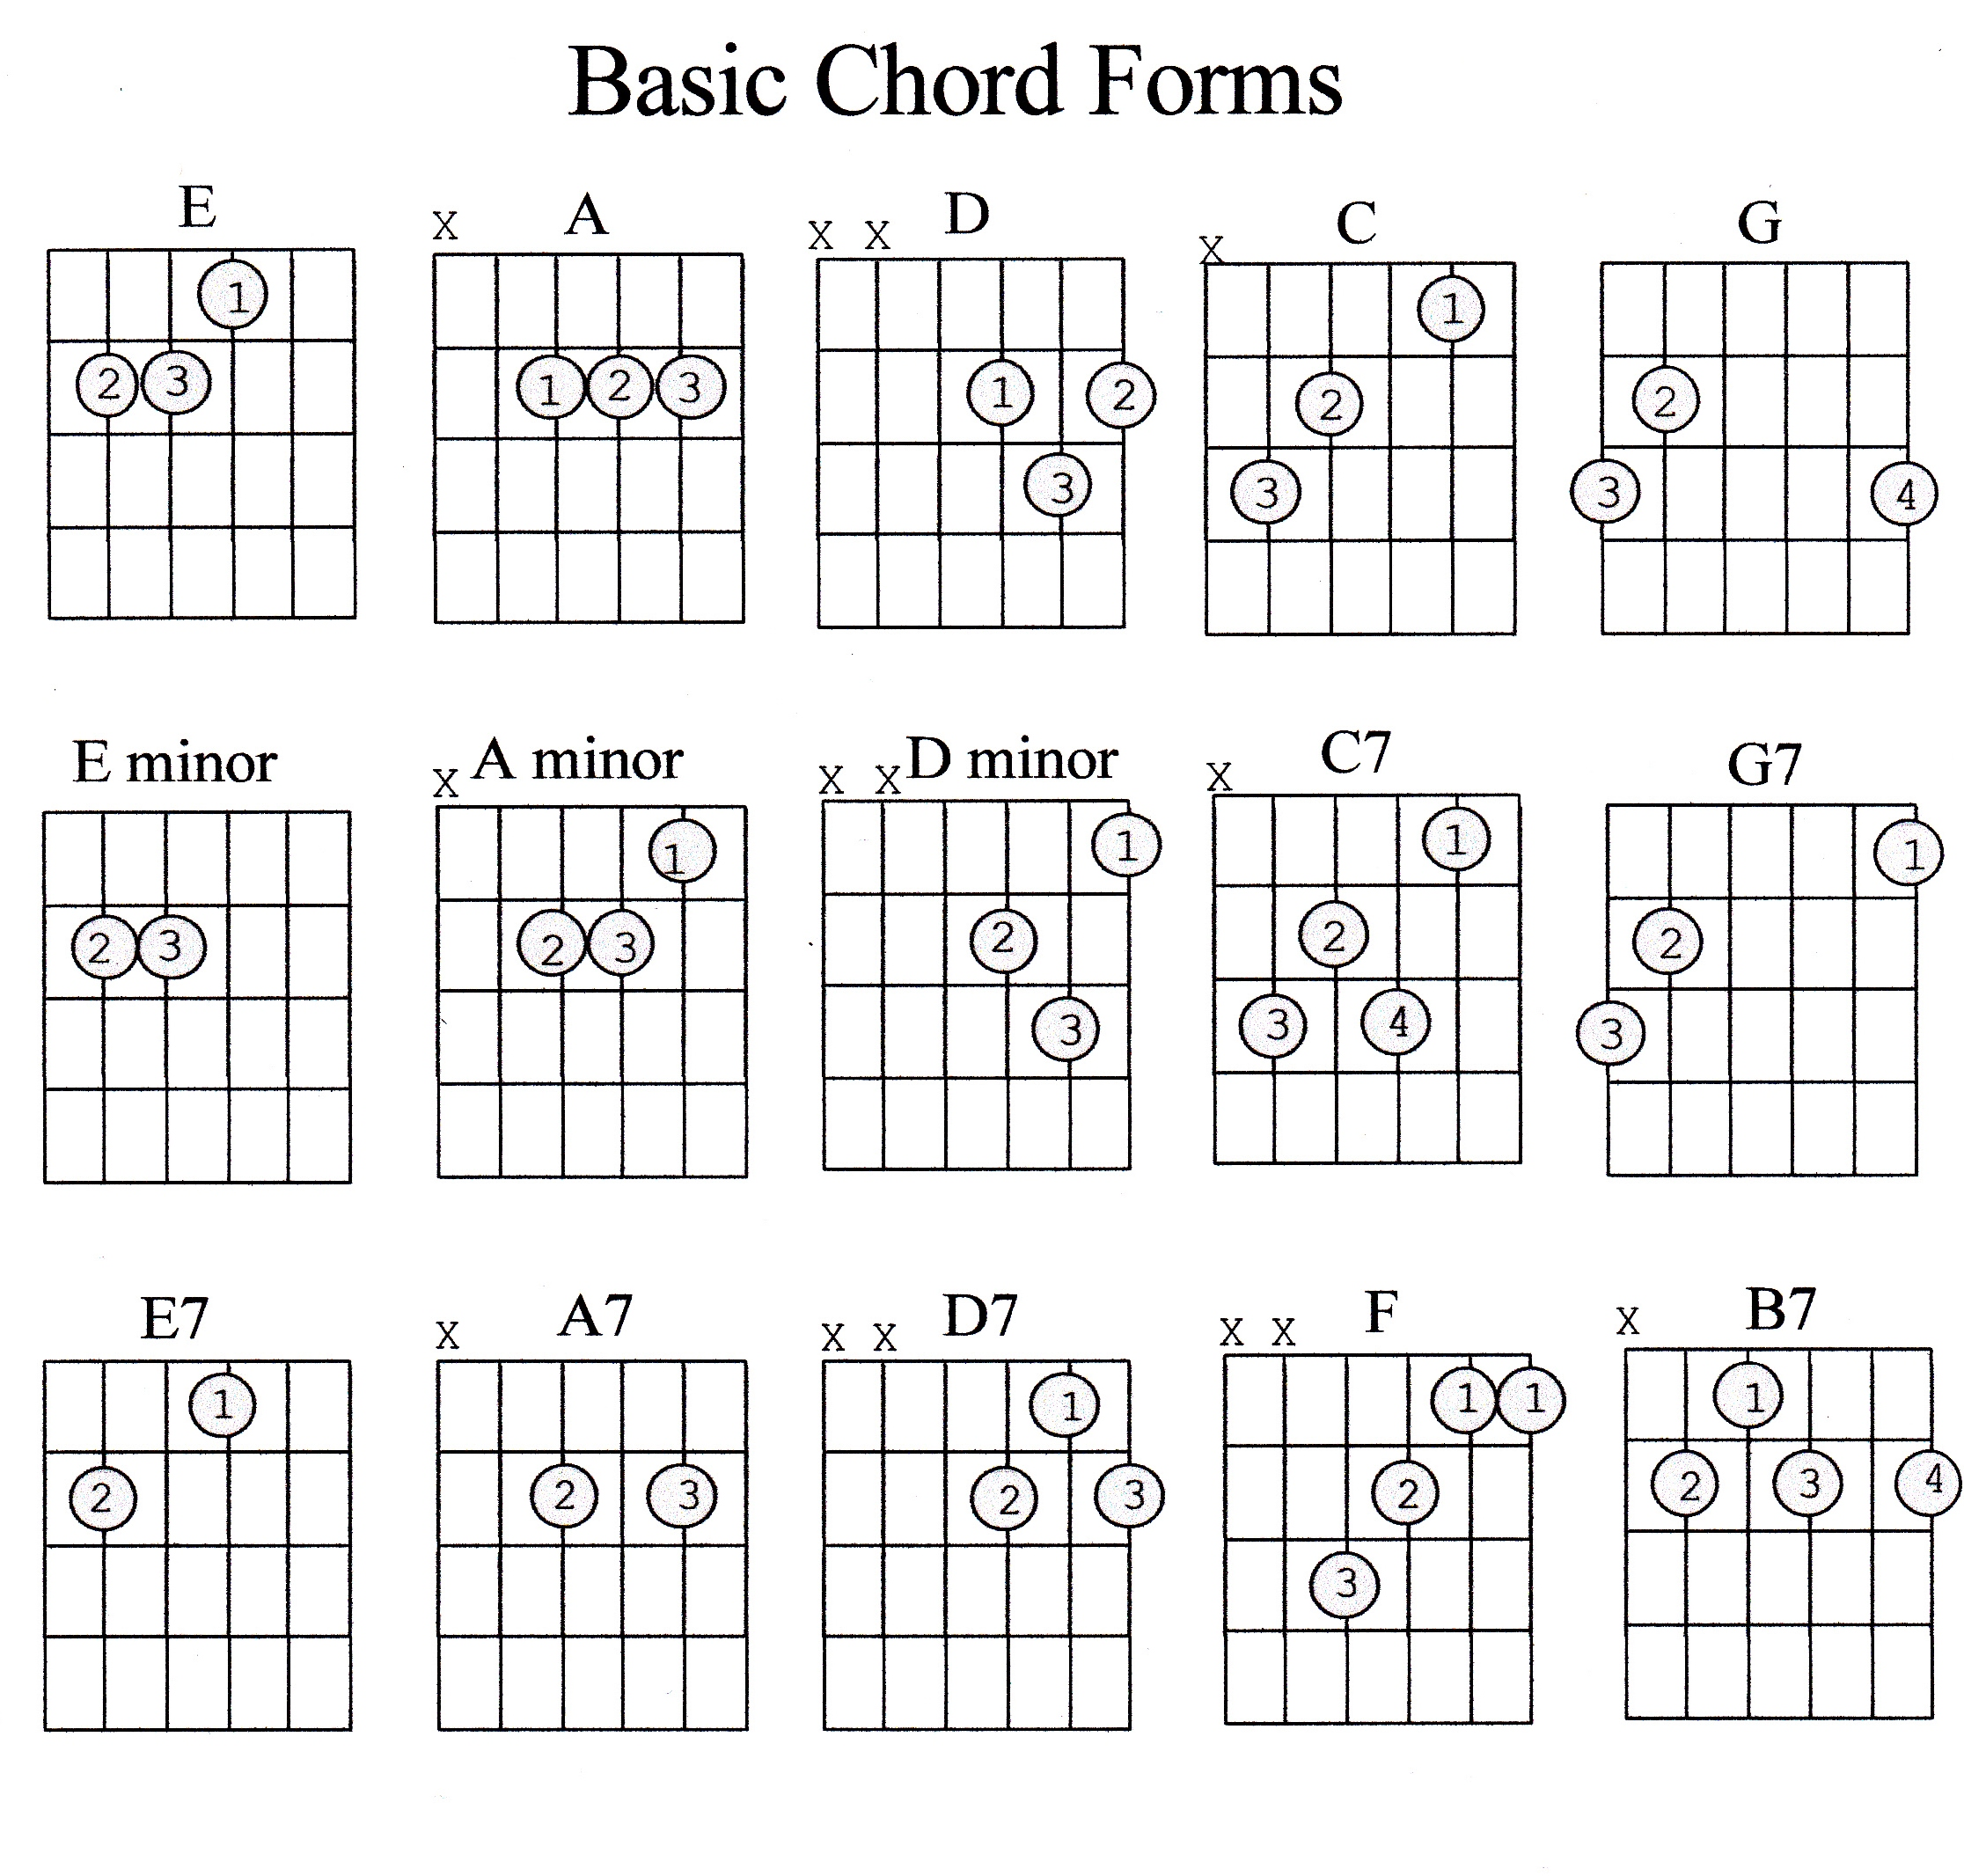 Kung wala ka guitar chords images guitar chords examples kung wala ka guitar chords images guitar chords examples kung wala ka guitar chords choice image hexwebz Gallery